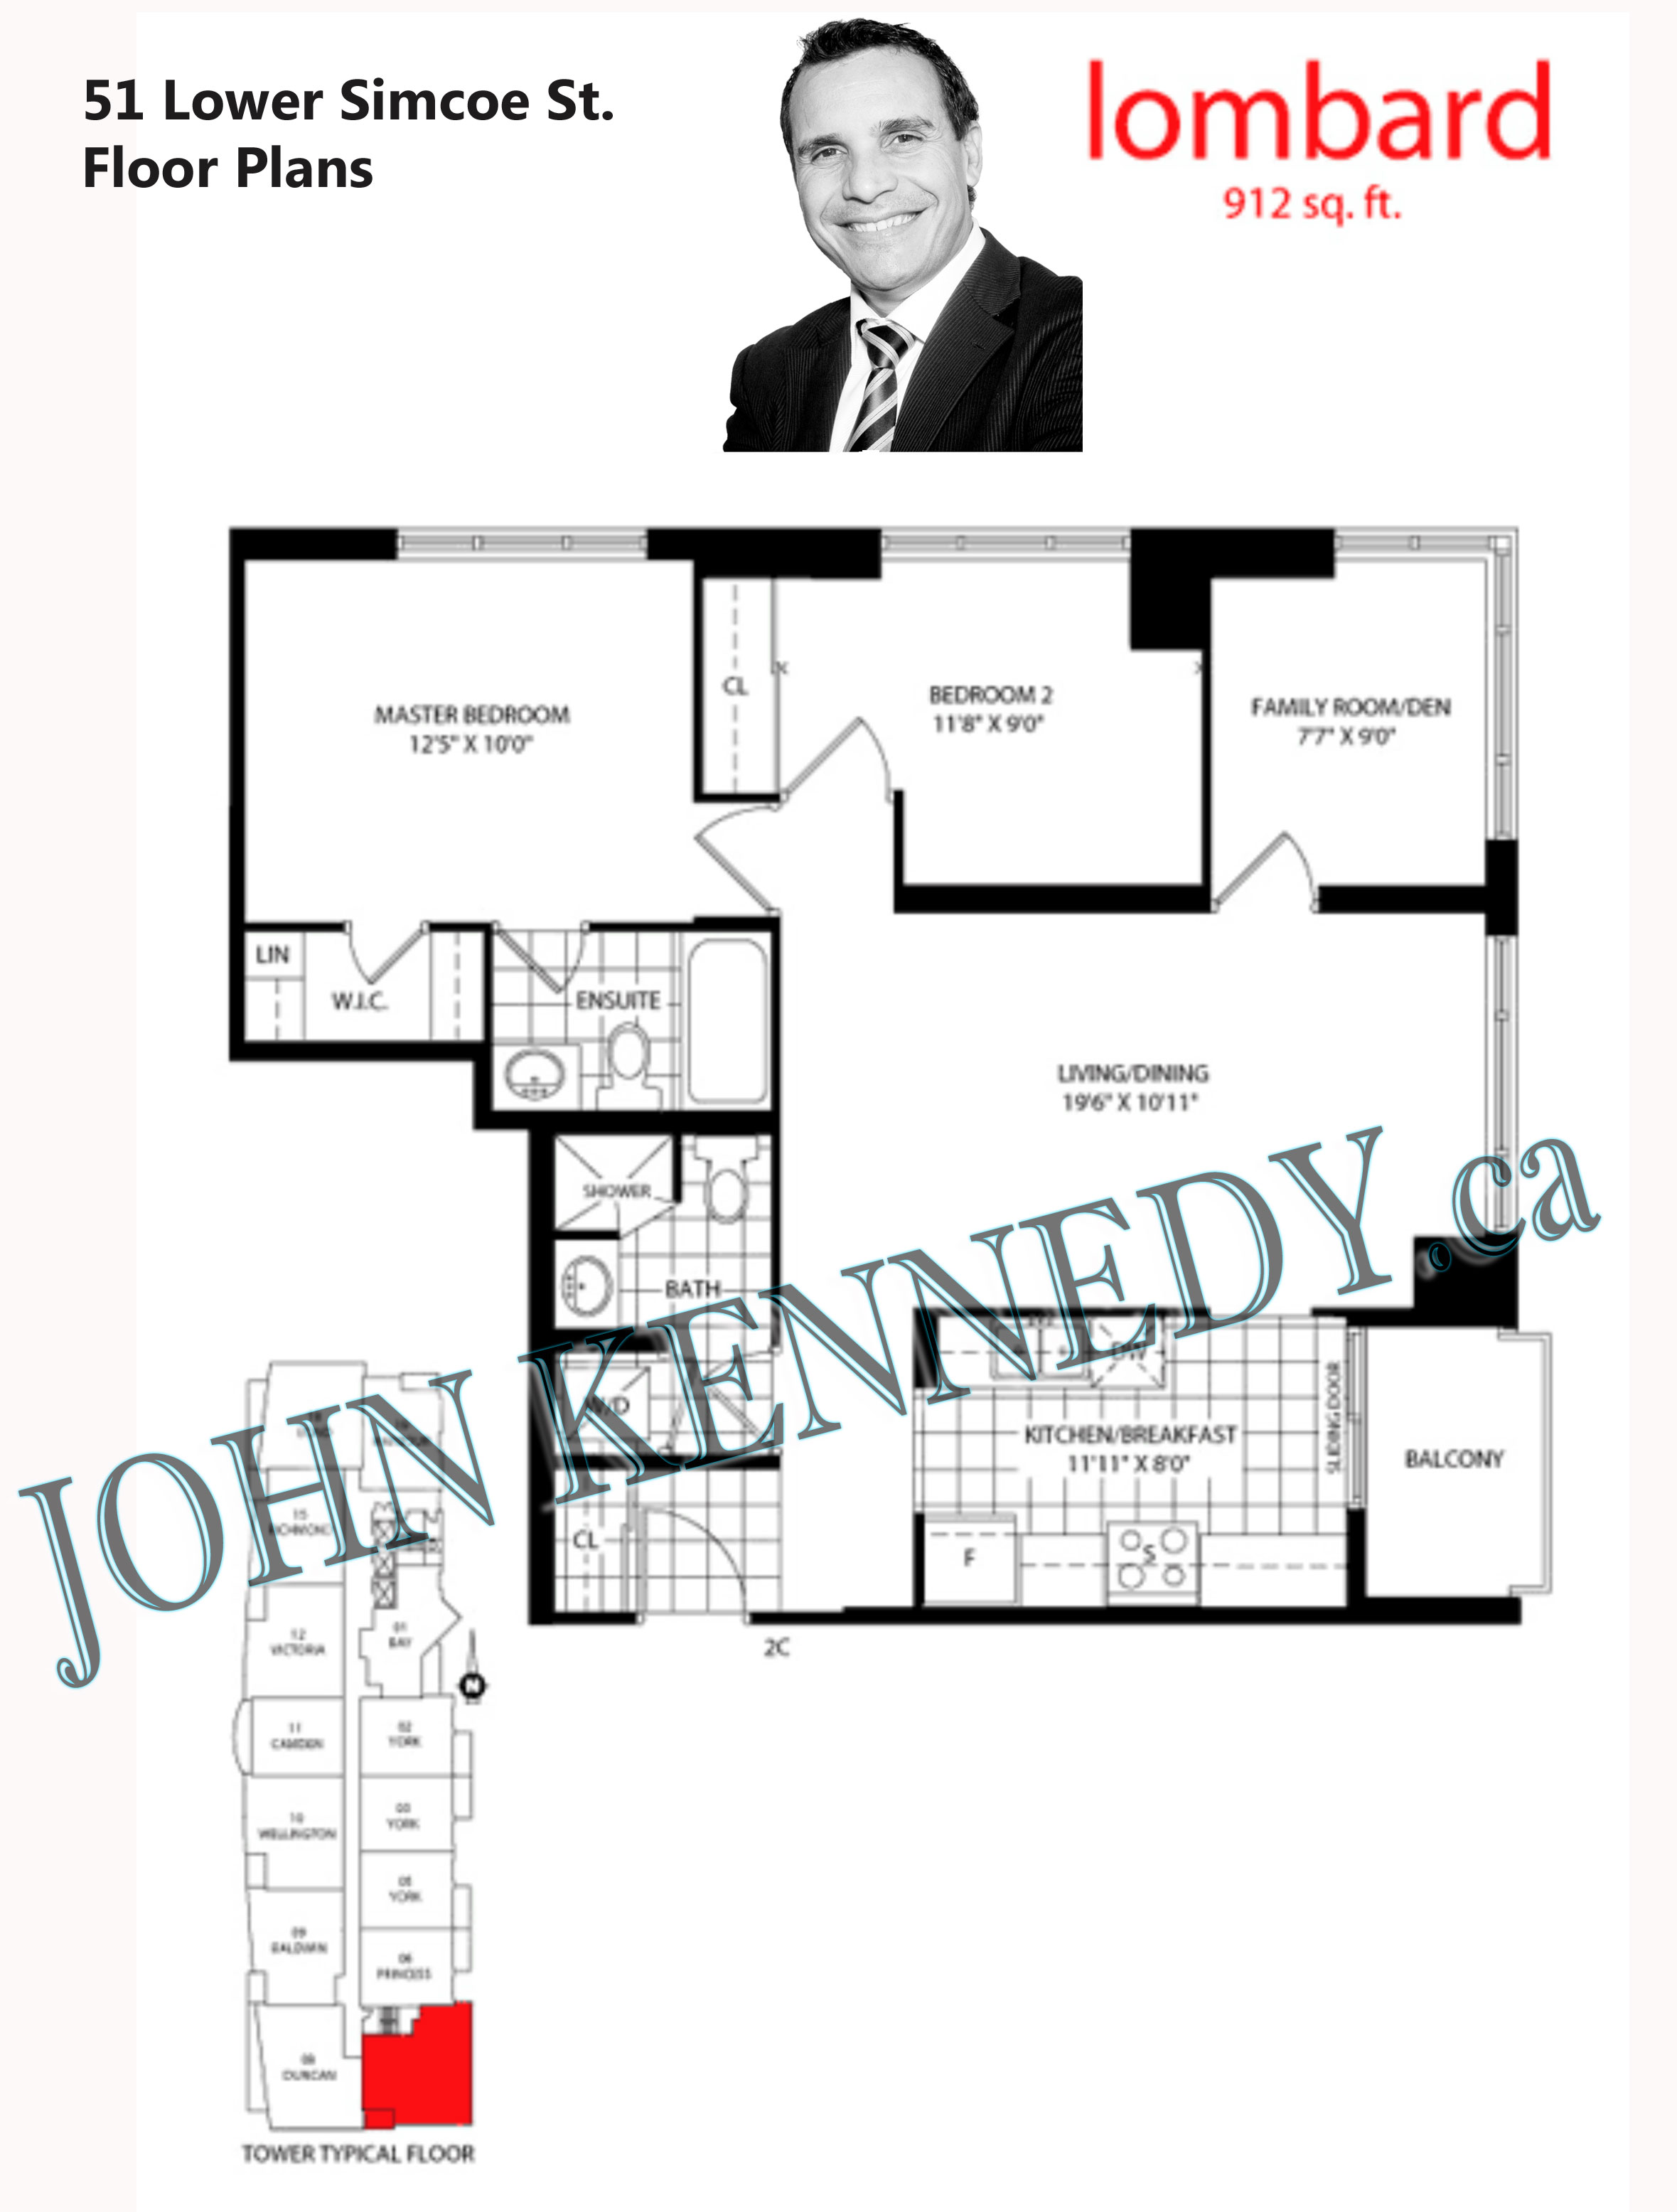 126 Simcoe Floor Plan Of 51 Lower Simcoe St Toronto Infinity Condos Condos For